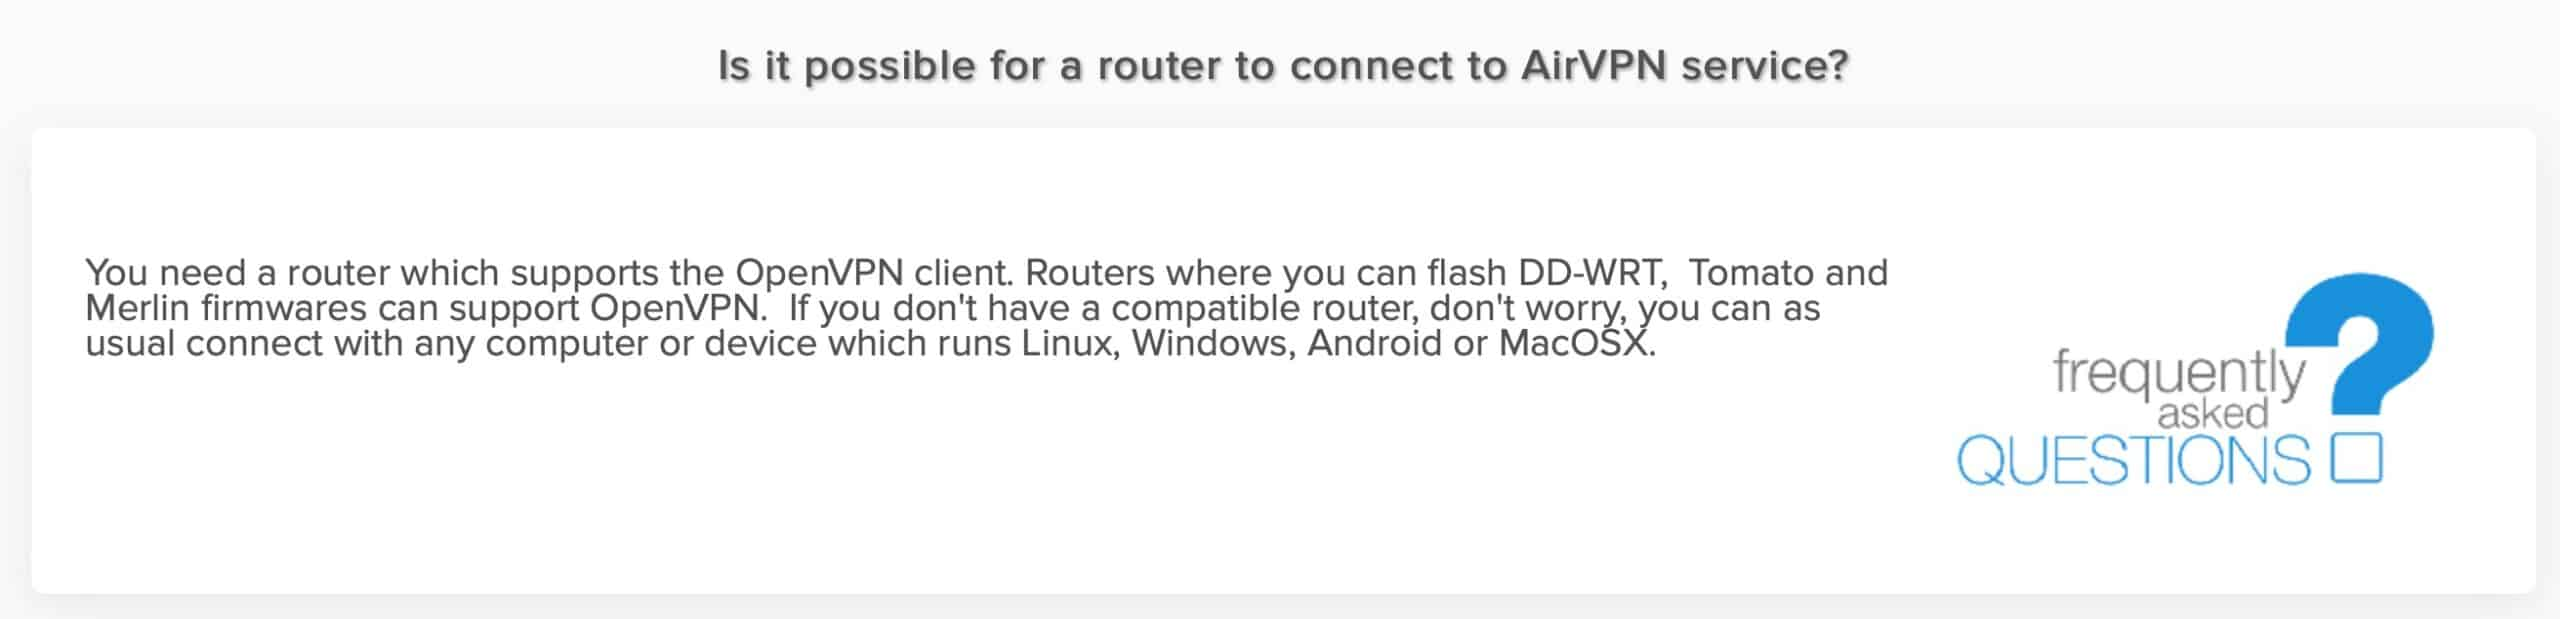 AirVPN - Routers